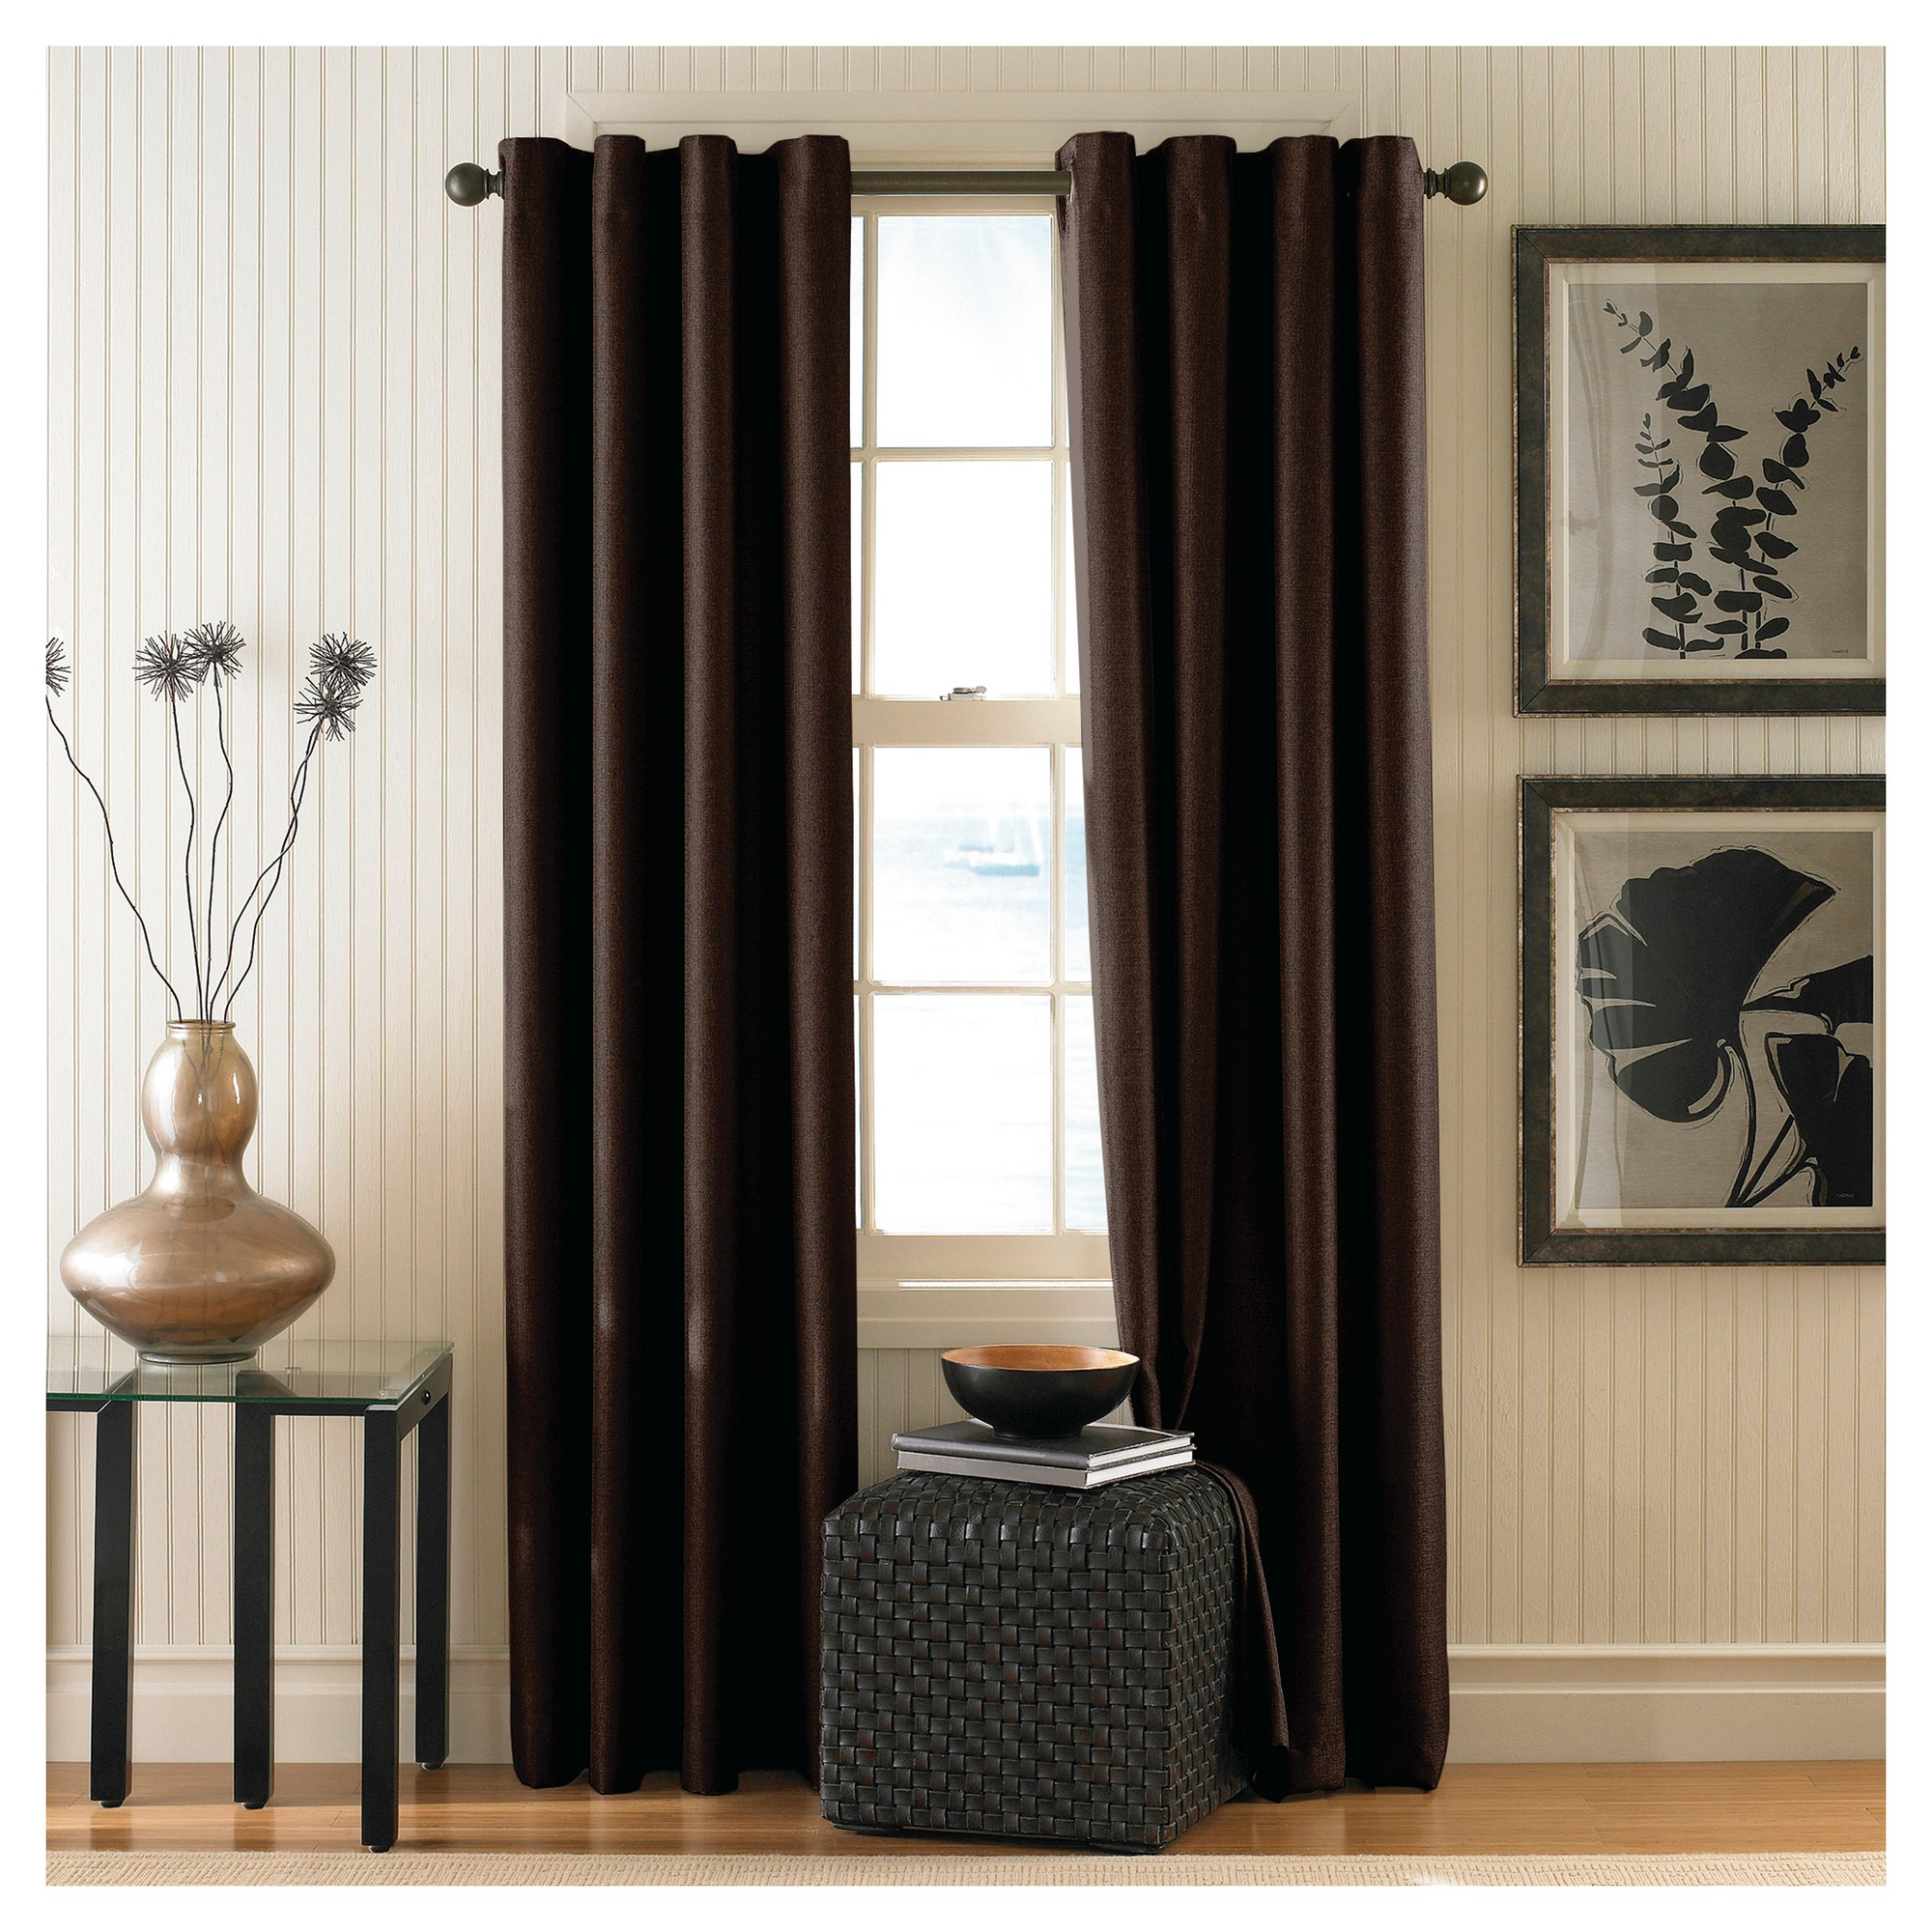 Curtainworks Monterey Lined Curtain Panel Chocolate Brown 108